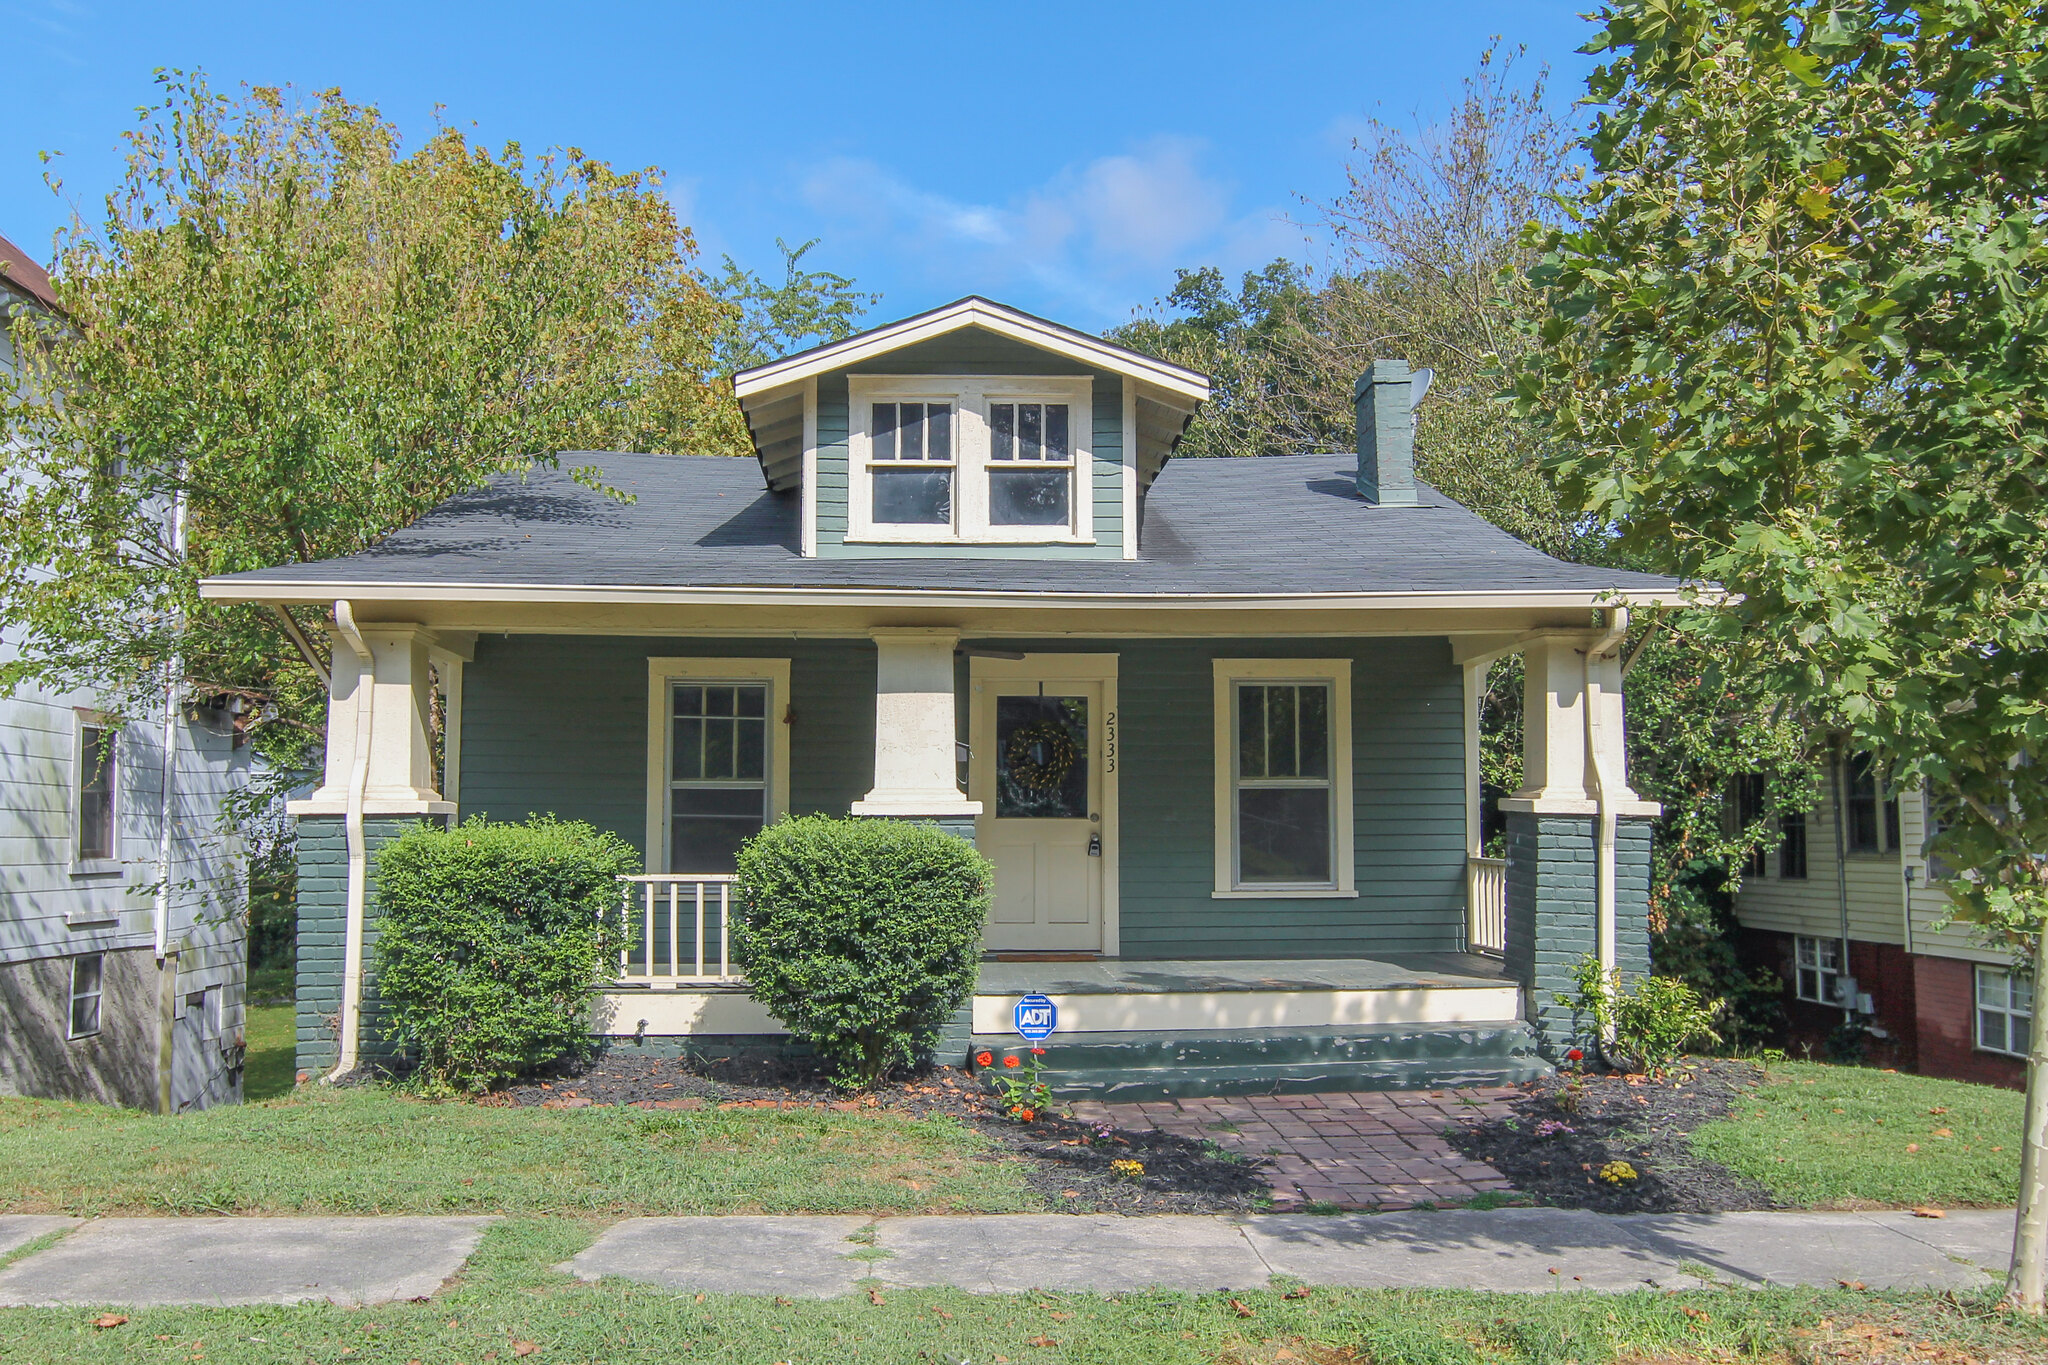 2333 Jefferson Ave. Knoxville, TN 37917